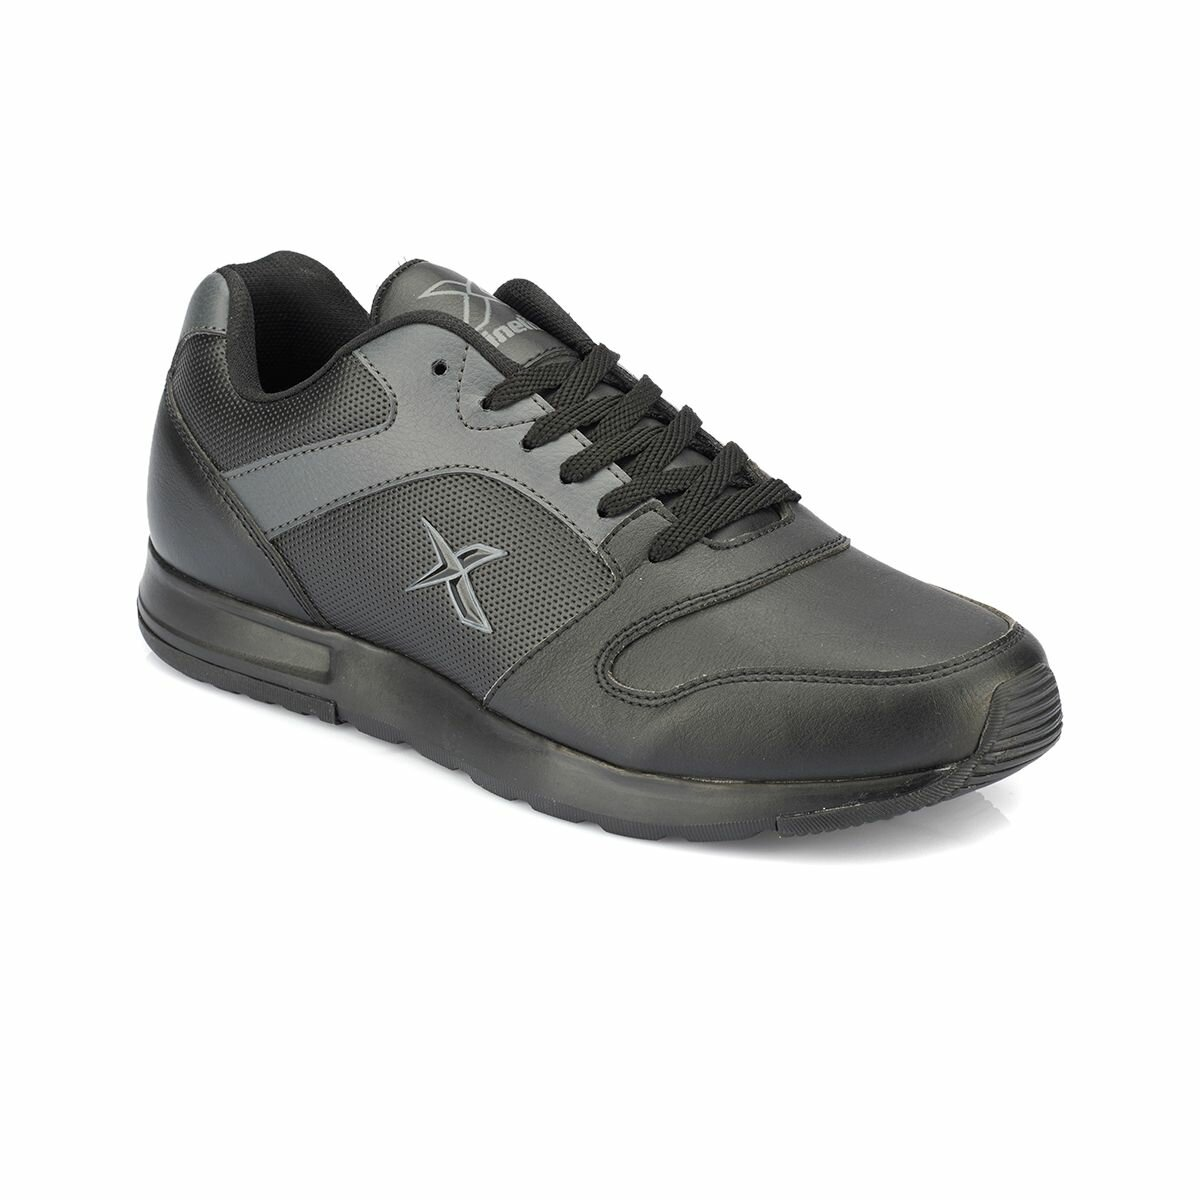 FLO FLAT PU M Black Men 'S Sneaker Shoes KINETIX